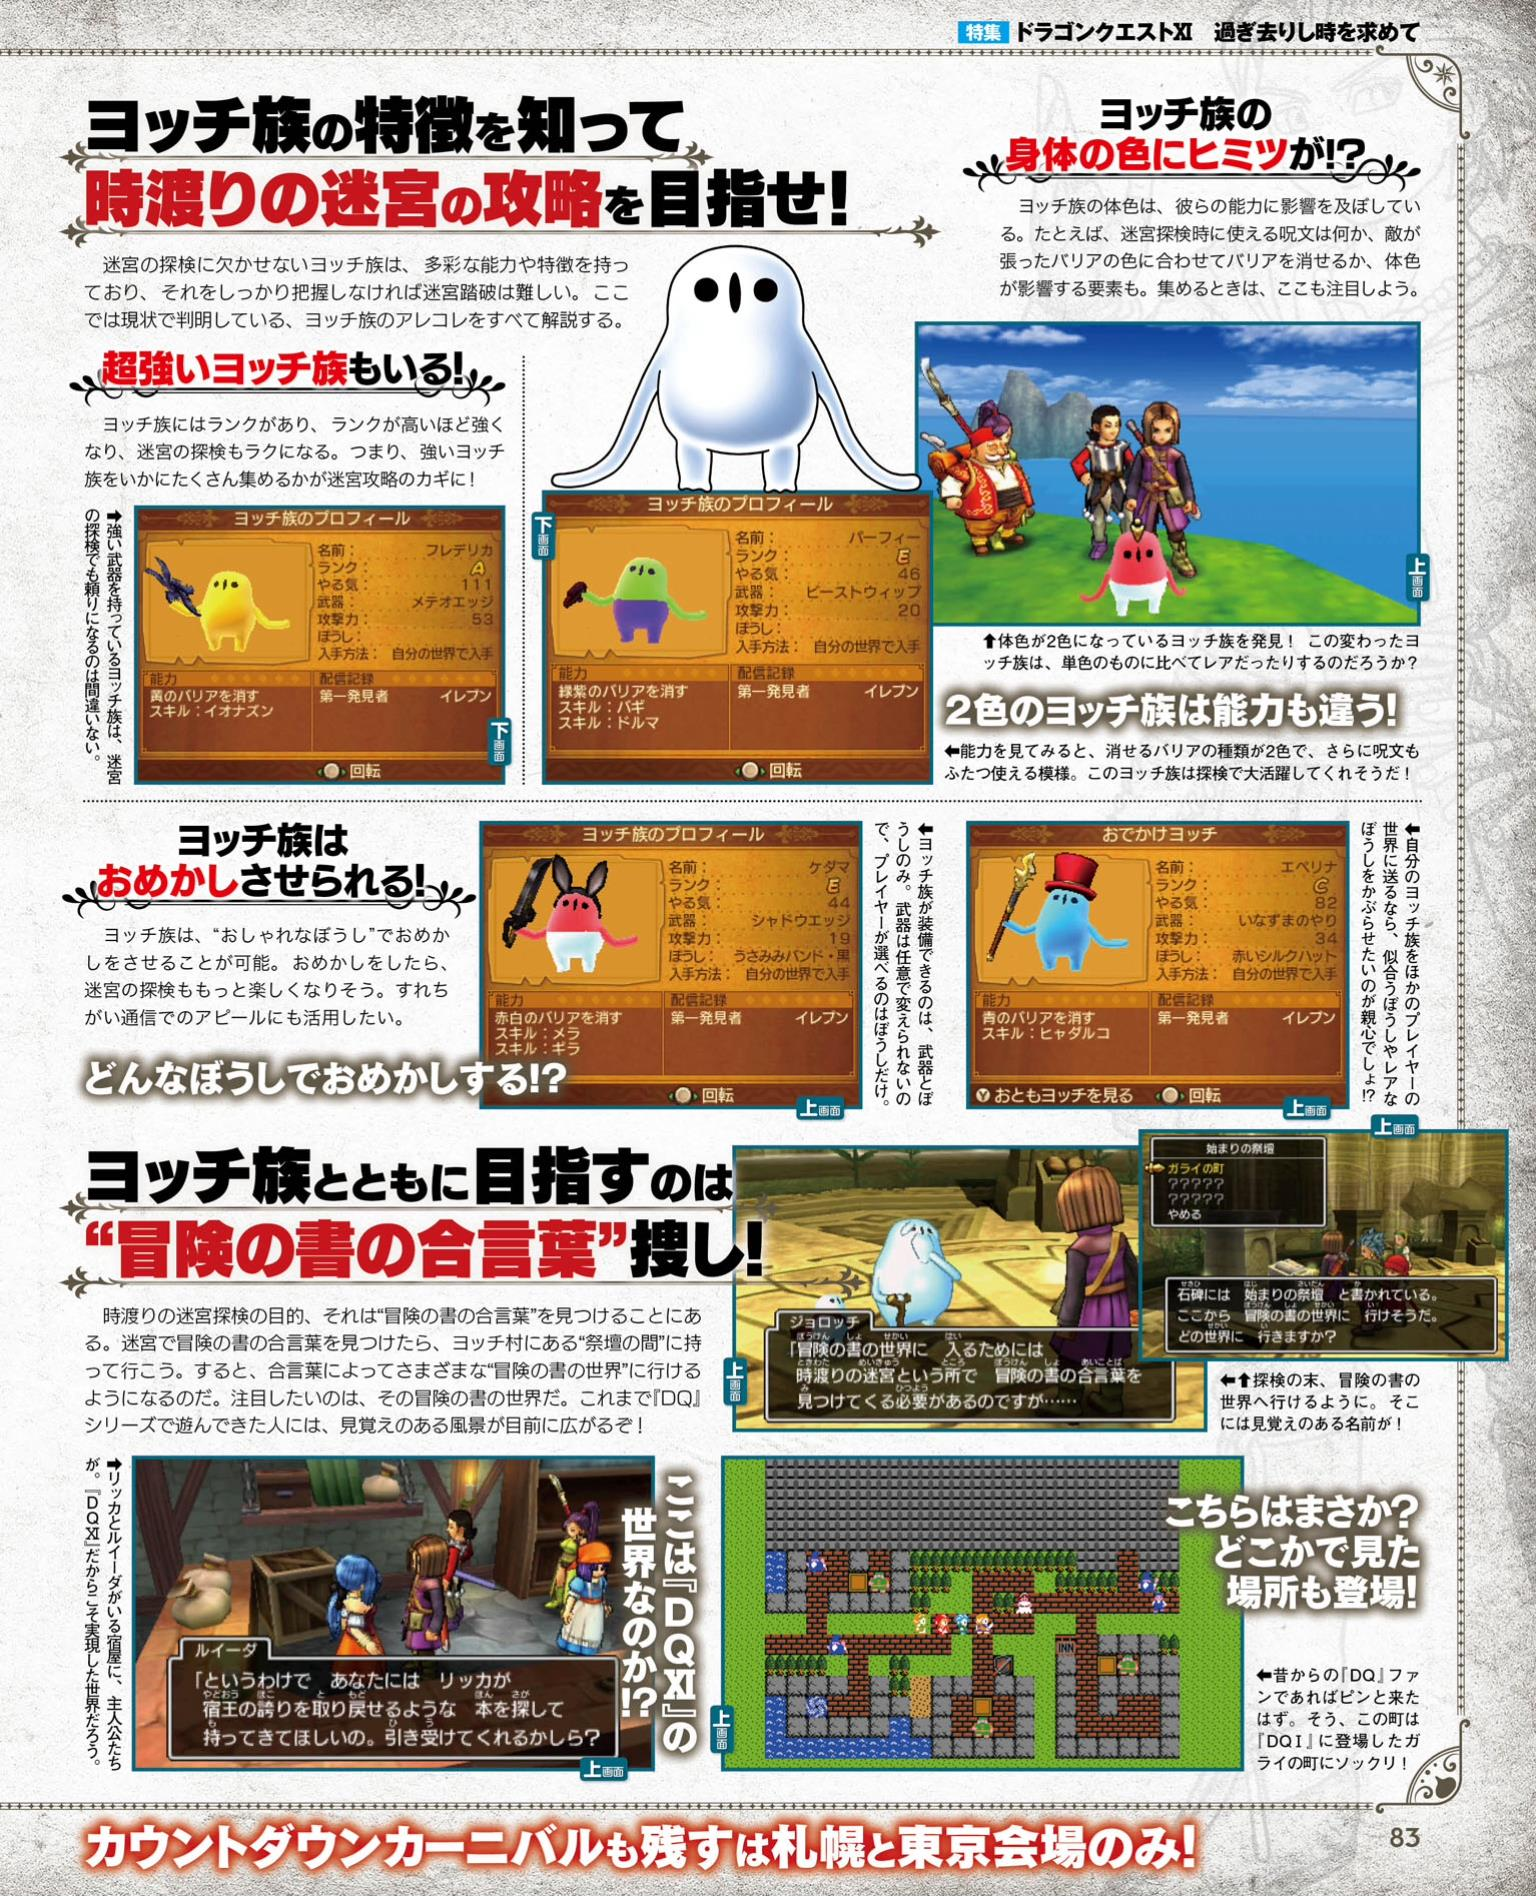 Scans Roundup Mario Rabbids Starlink Dragon Quest XI